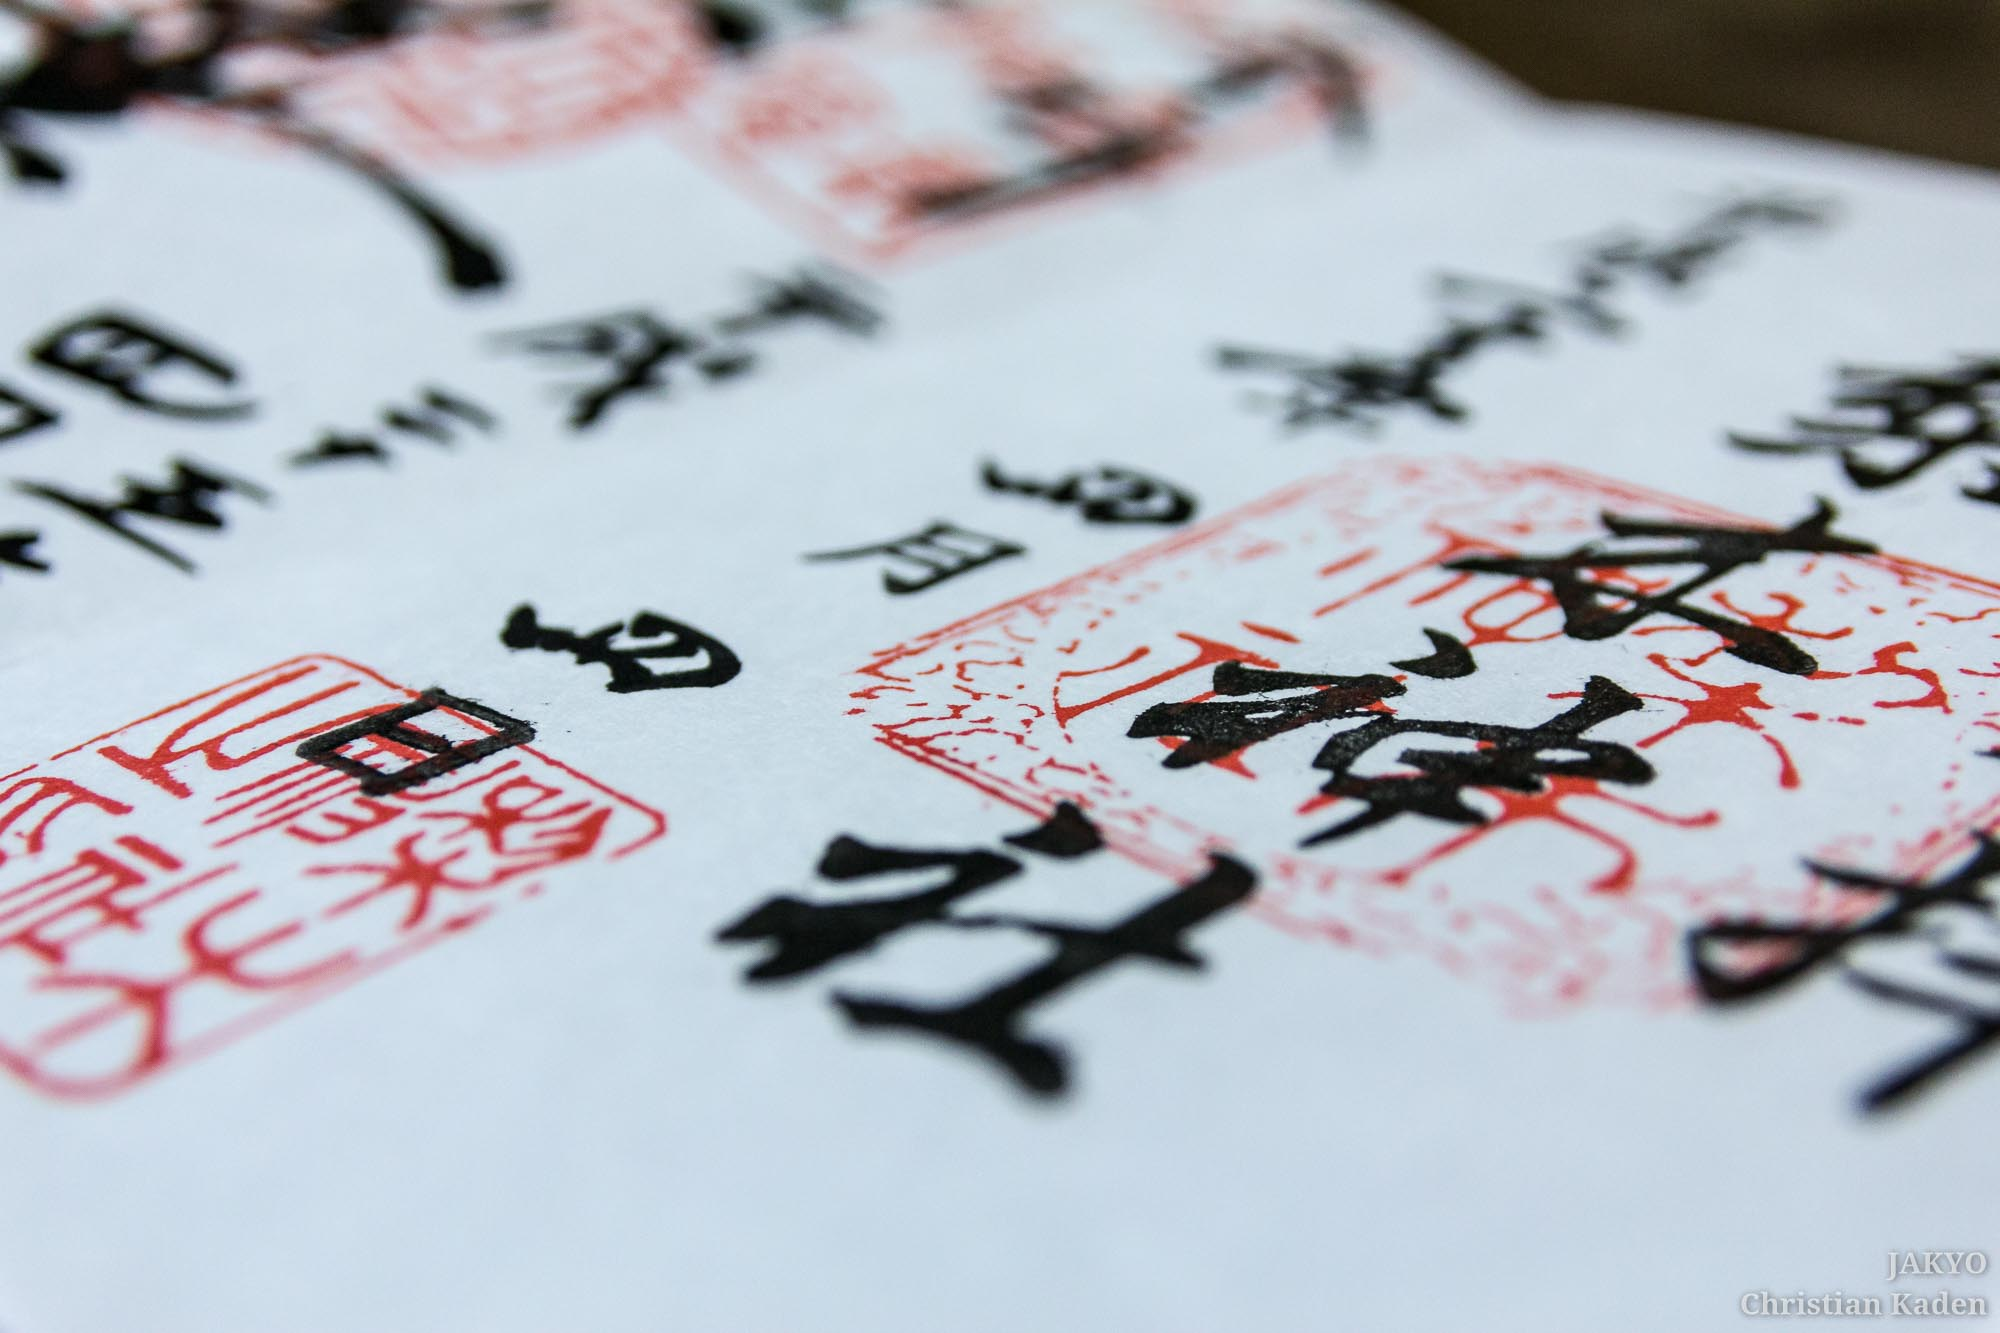 Red Temple and Shrine Stamps: goshuin / Book, Buch, Goshuin, Goshuincho, J2013, Japan, Notebook, Red Stamp, Roter Stempel, Shuin, ごしゅいん, ごしゅいんちょう, ほん, 御朱印, 御朱印帳, 日本, 本